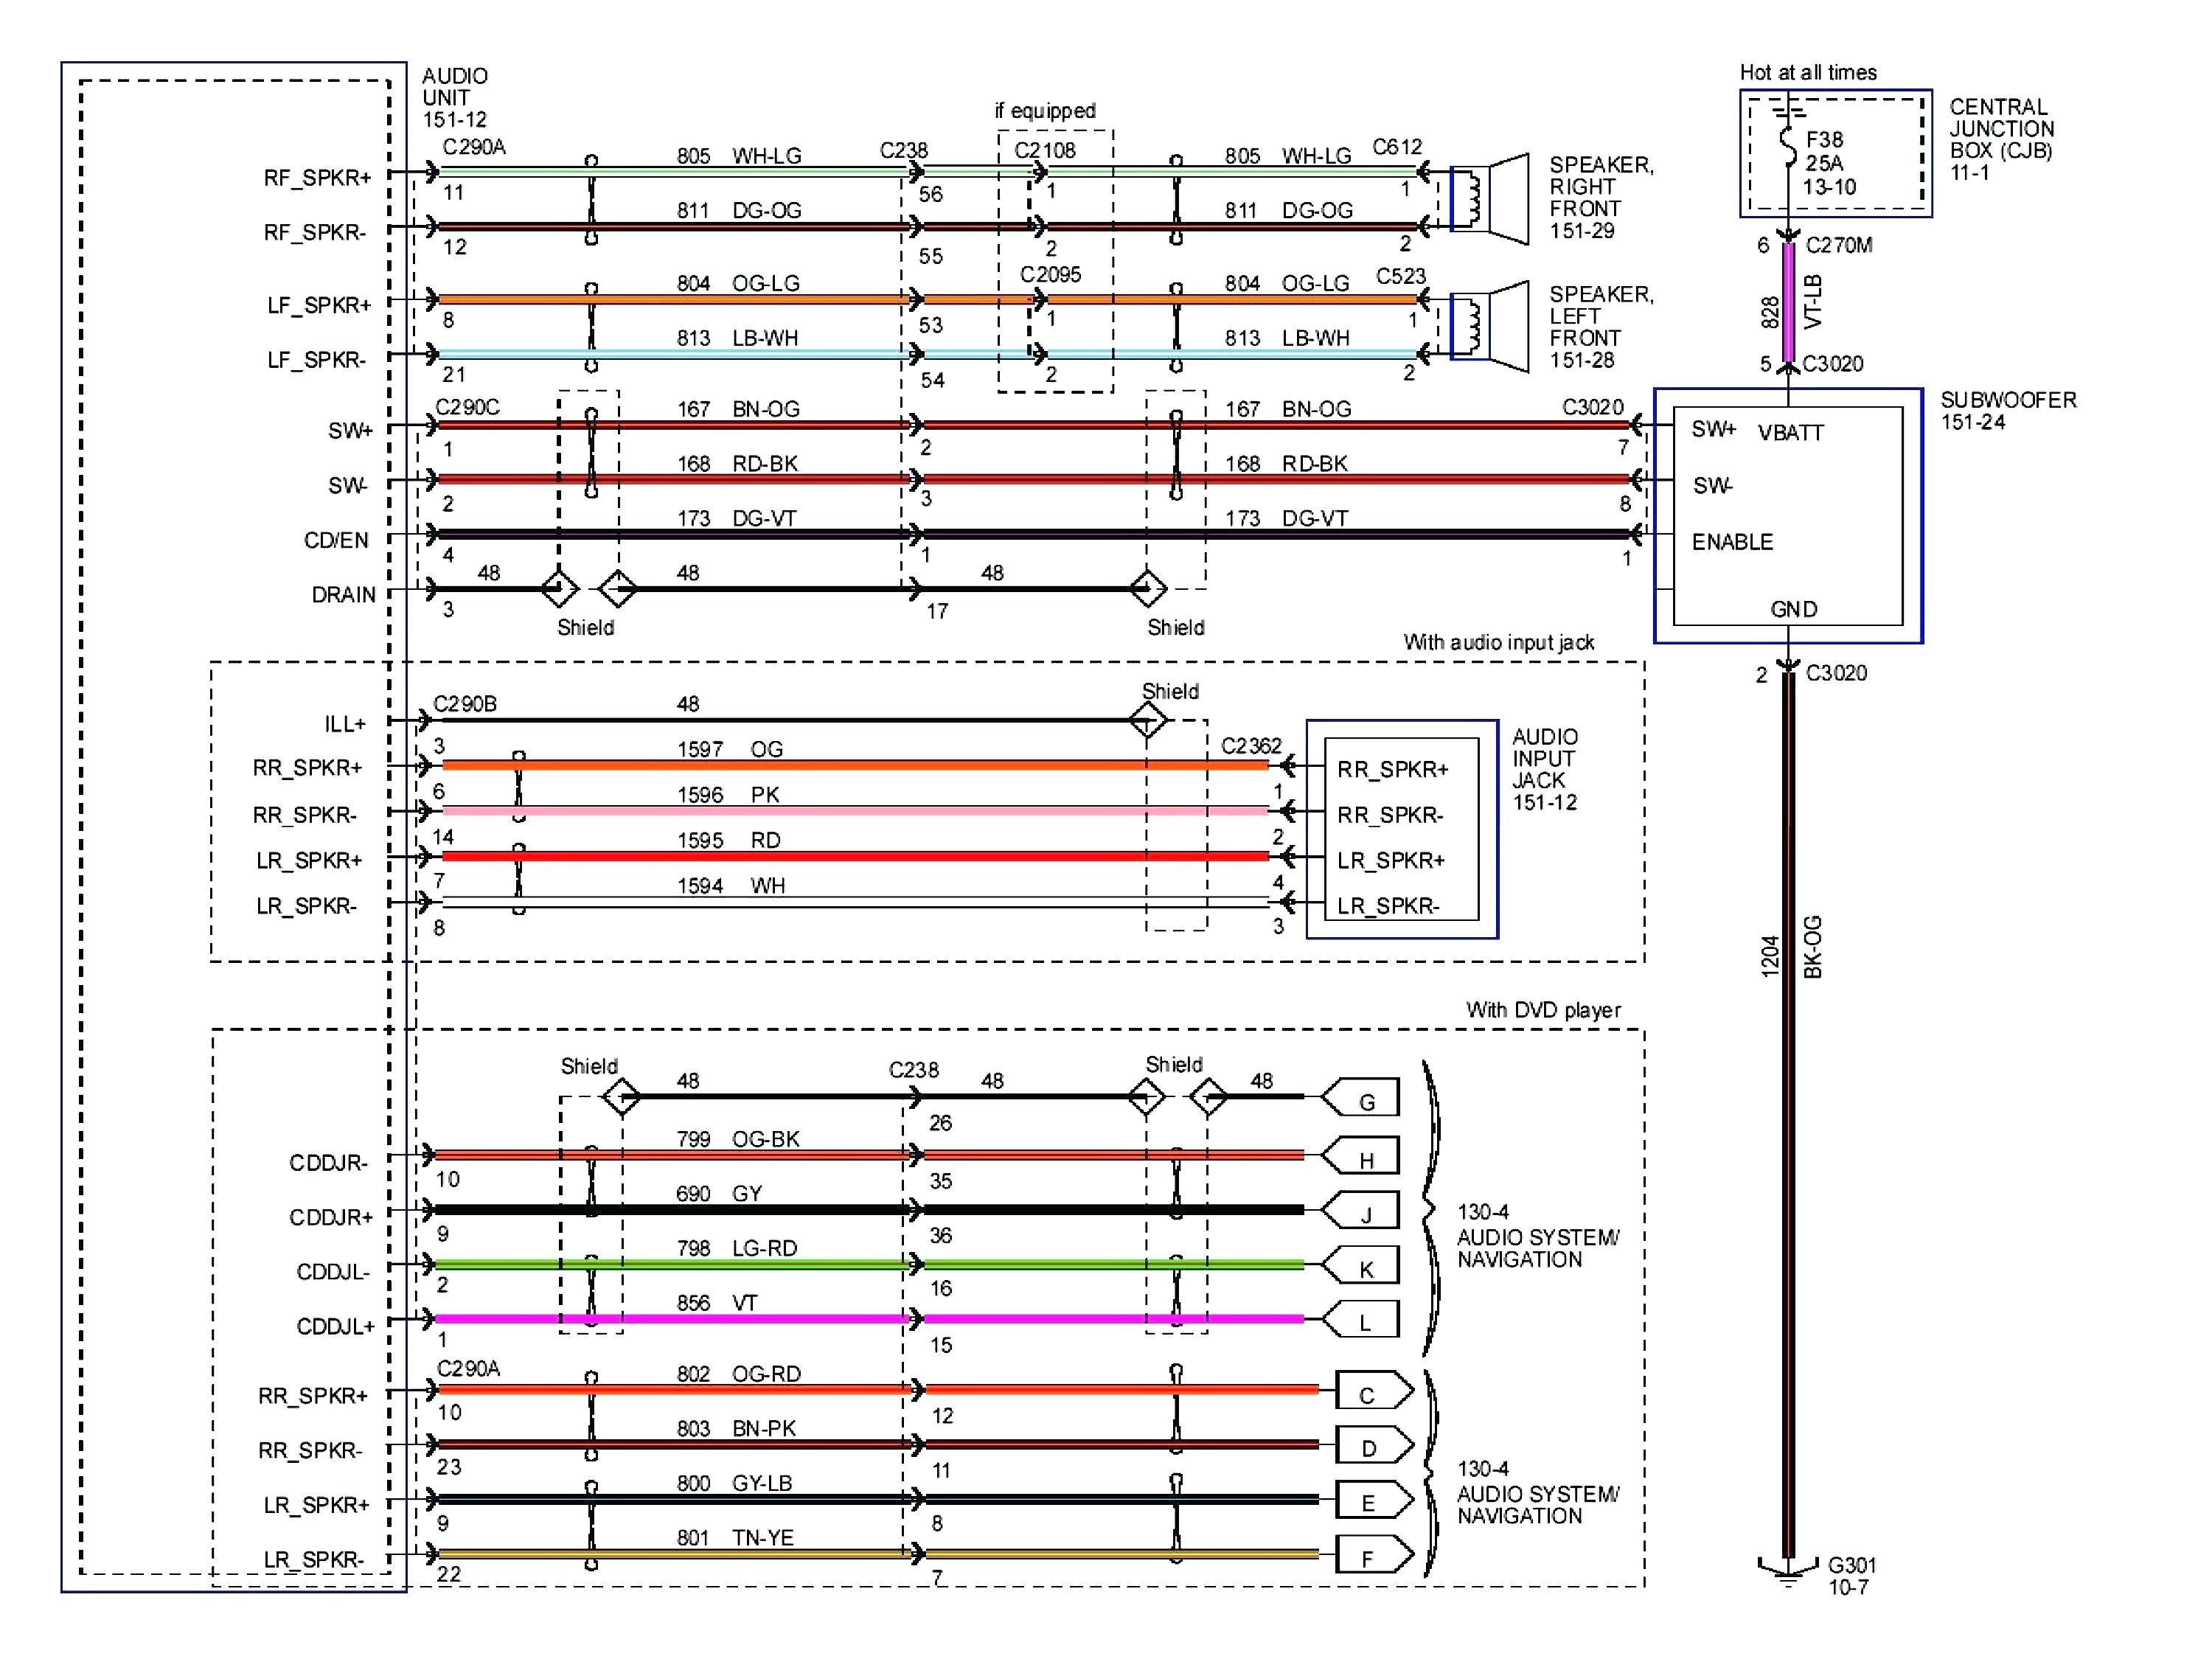 Magnificent Chevy S10 Wiring Harness Diagram On S10 Radio Wiring Color Diagram Wiring Cloud Lukepaidewilluminateatxorg